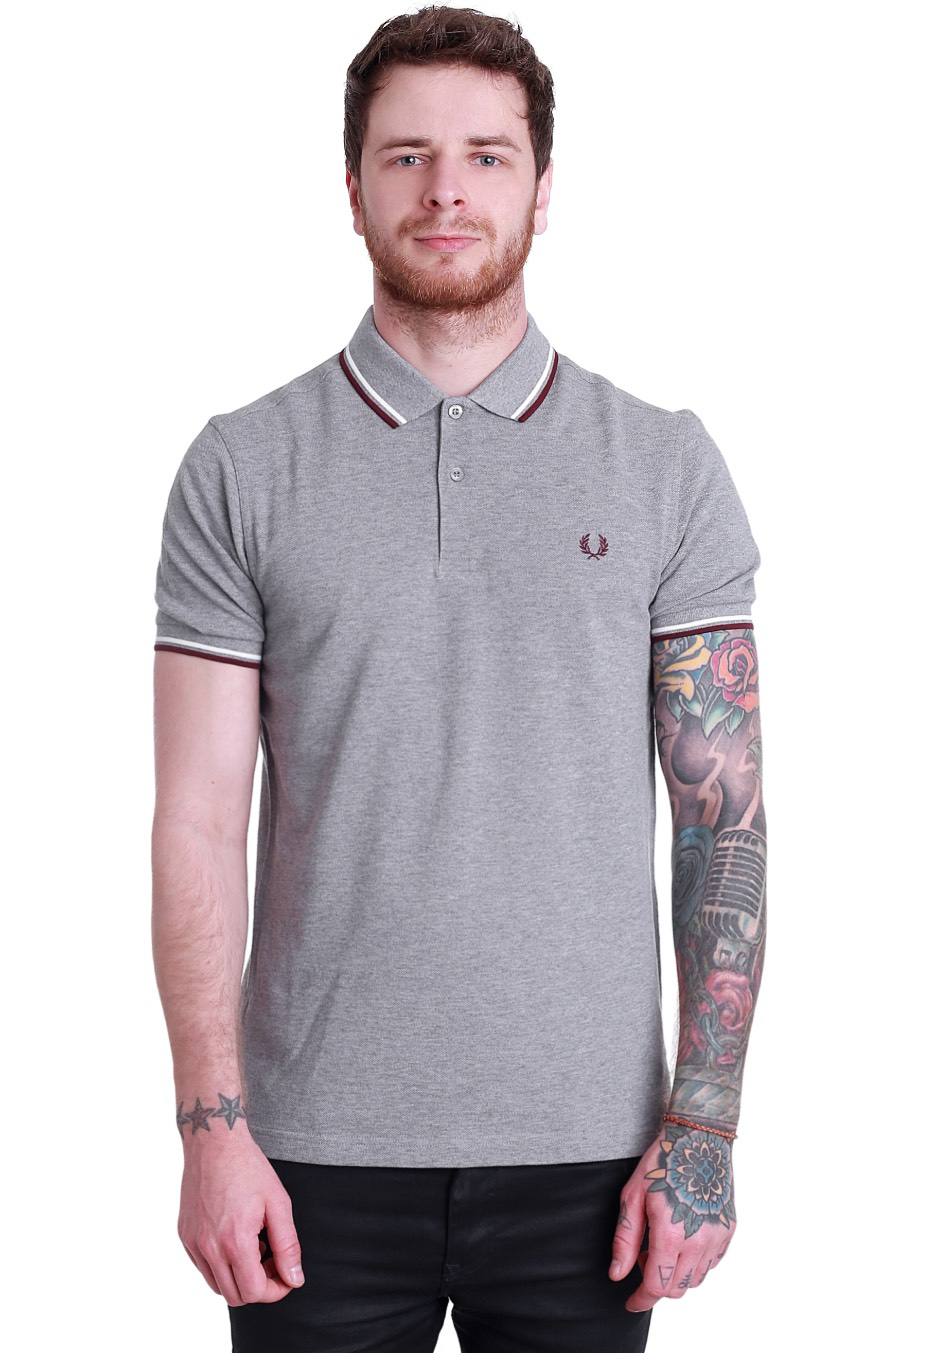 e48844bb5 Fred Perry - Slim Fit Twin Tipped Steel Marl/Snow White/Port - Polo -  Streetwear Shop - Impericon.com Worldwide